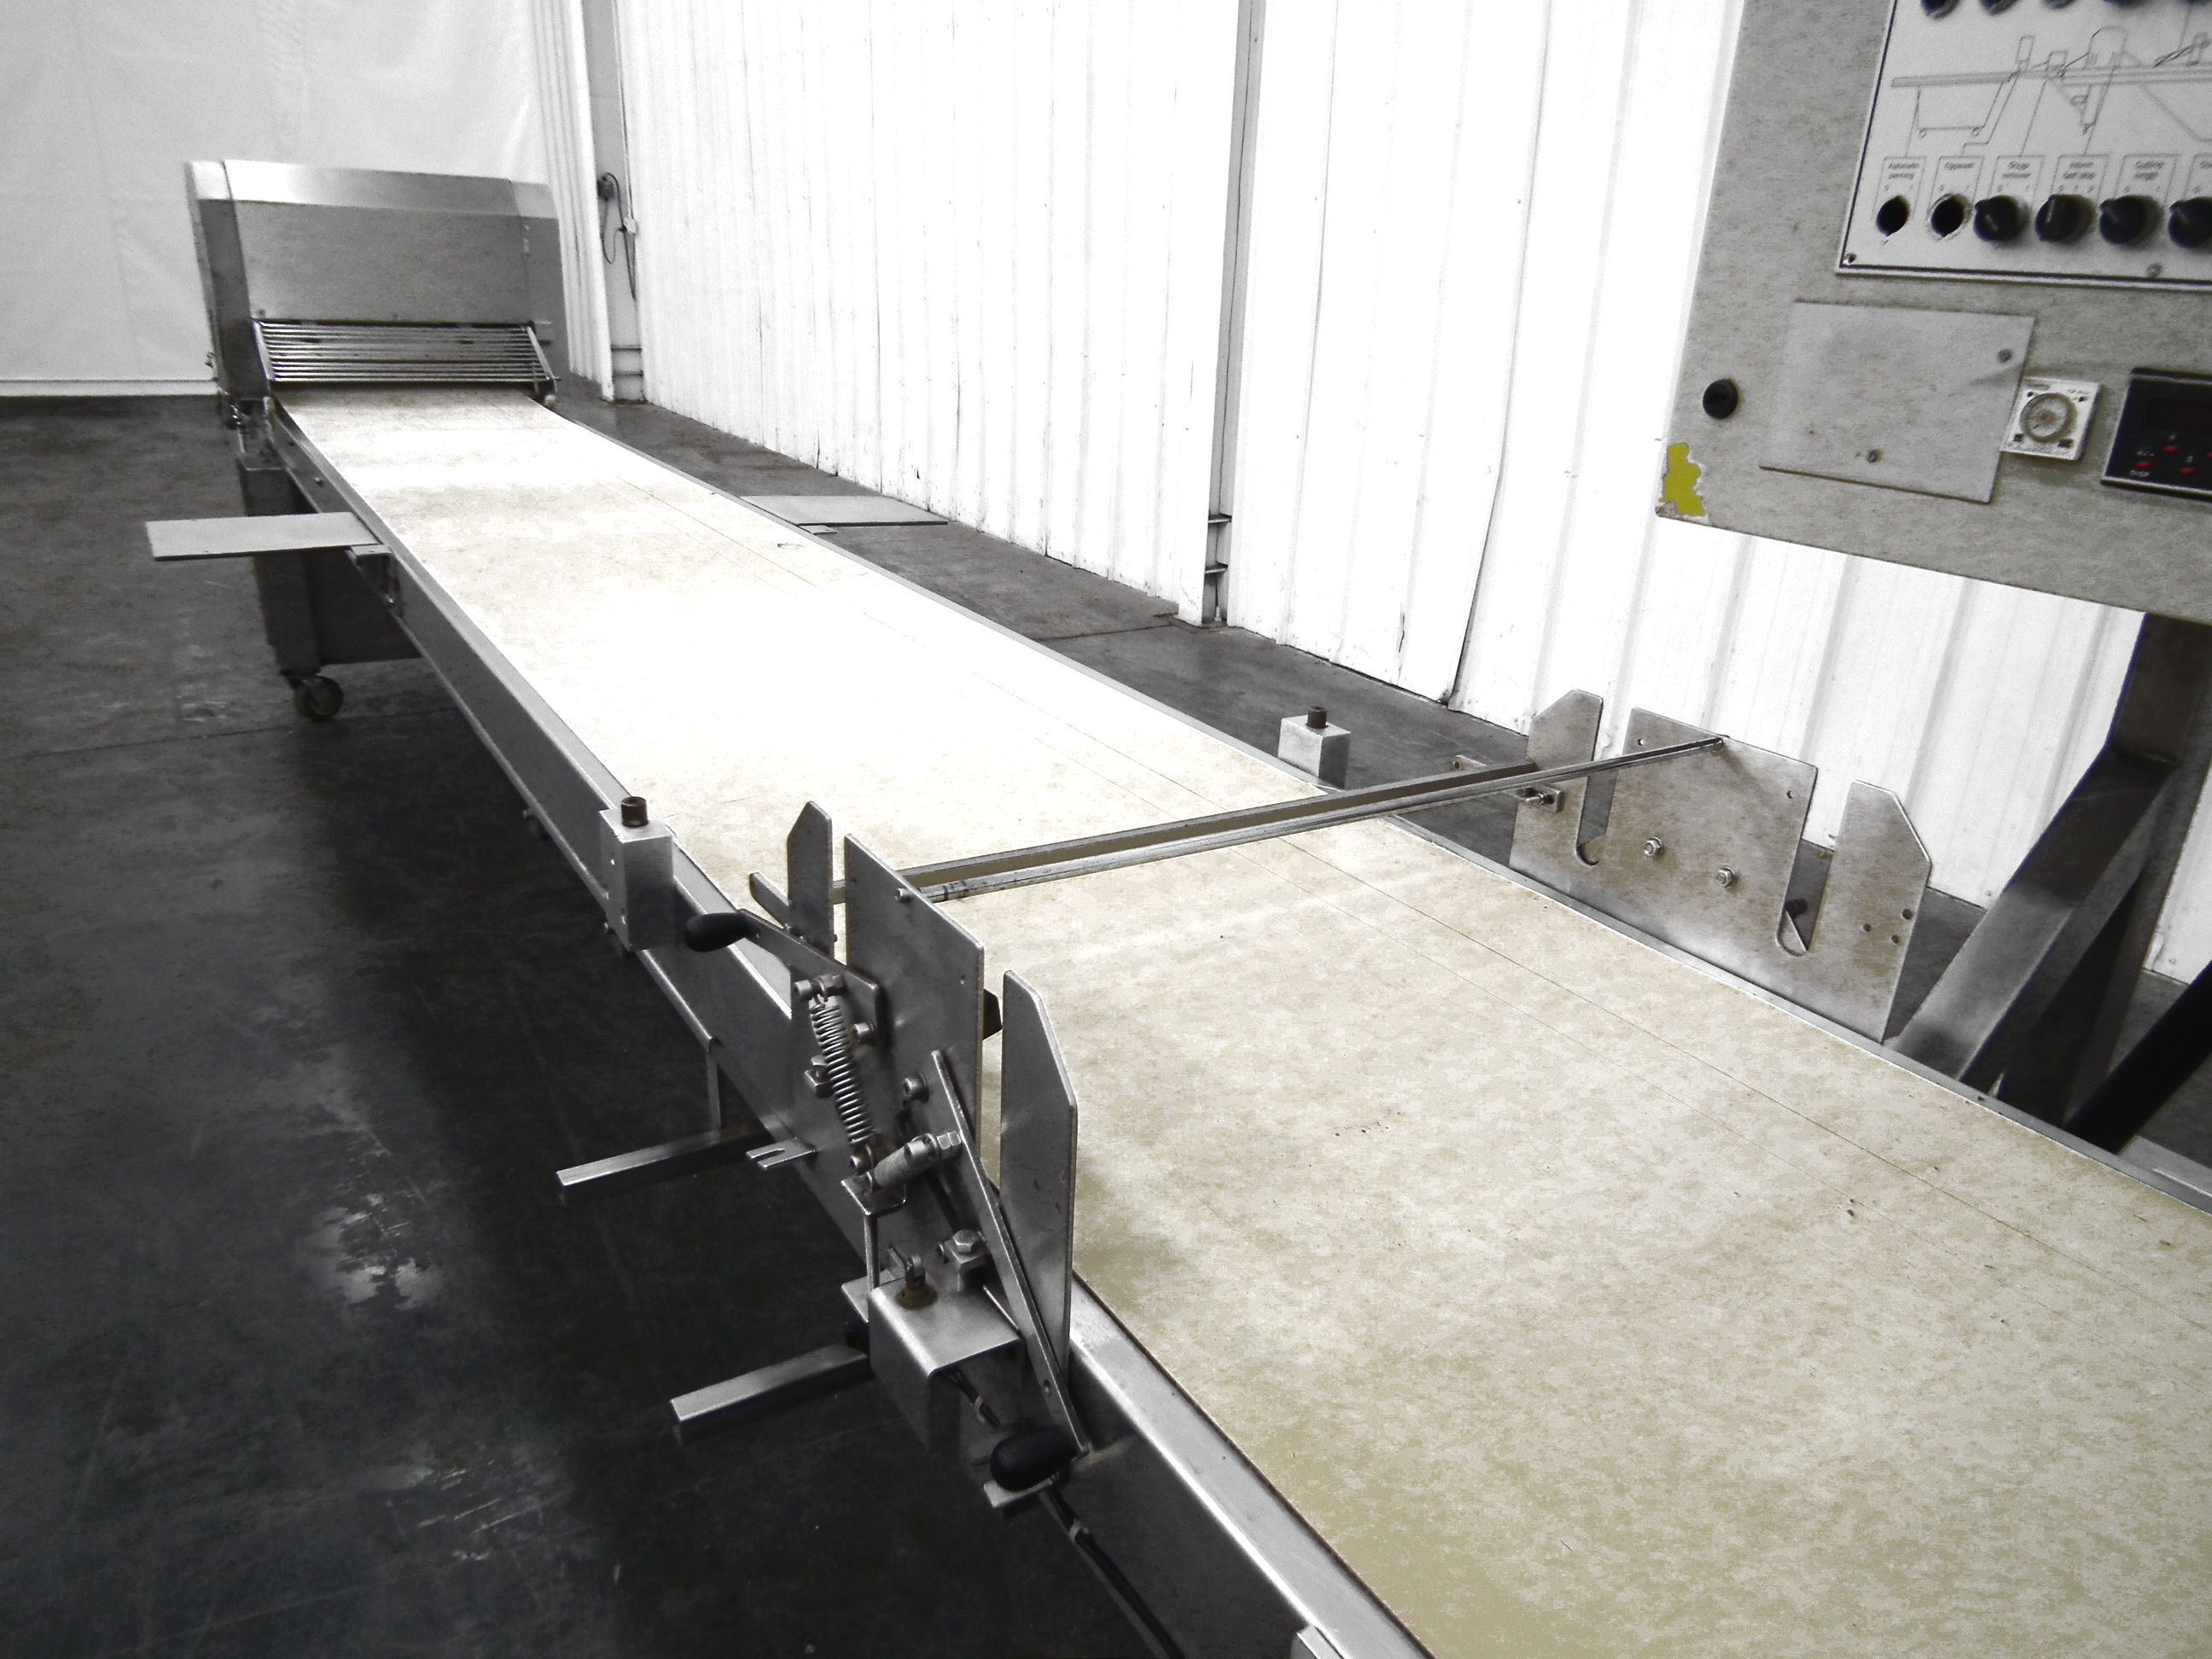 CIM Maxima 165 Dough Sheeter Guillotine 28 In Wide A7948 - Image 8 of 11